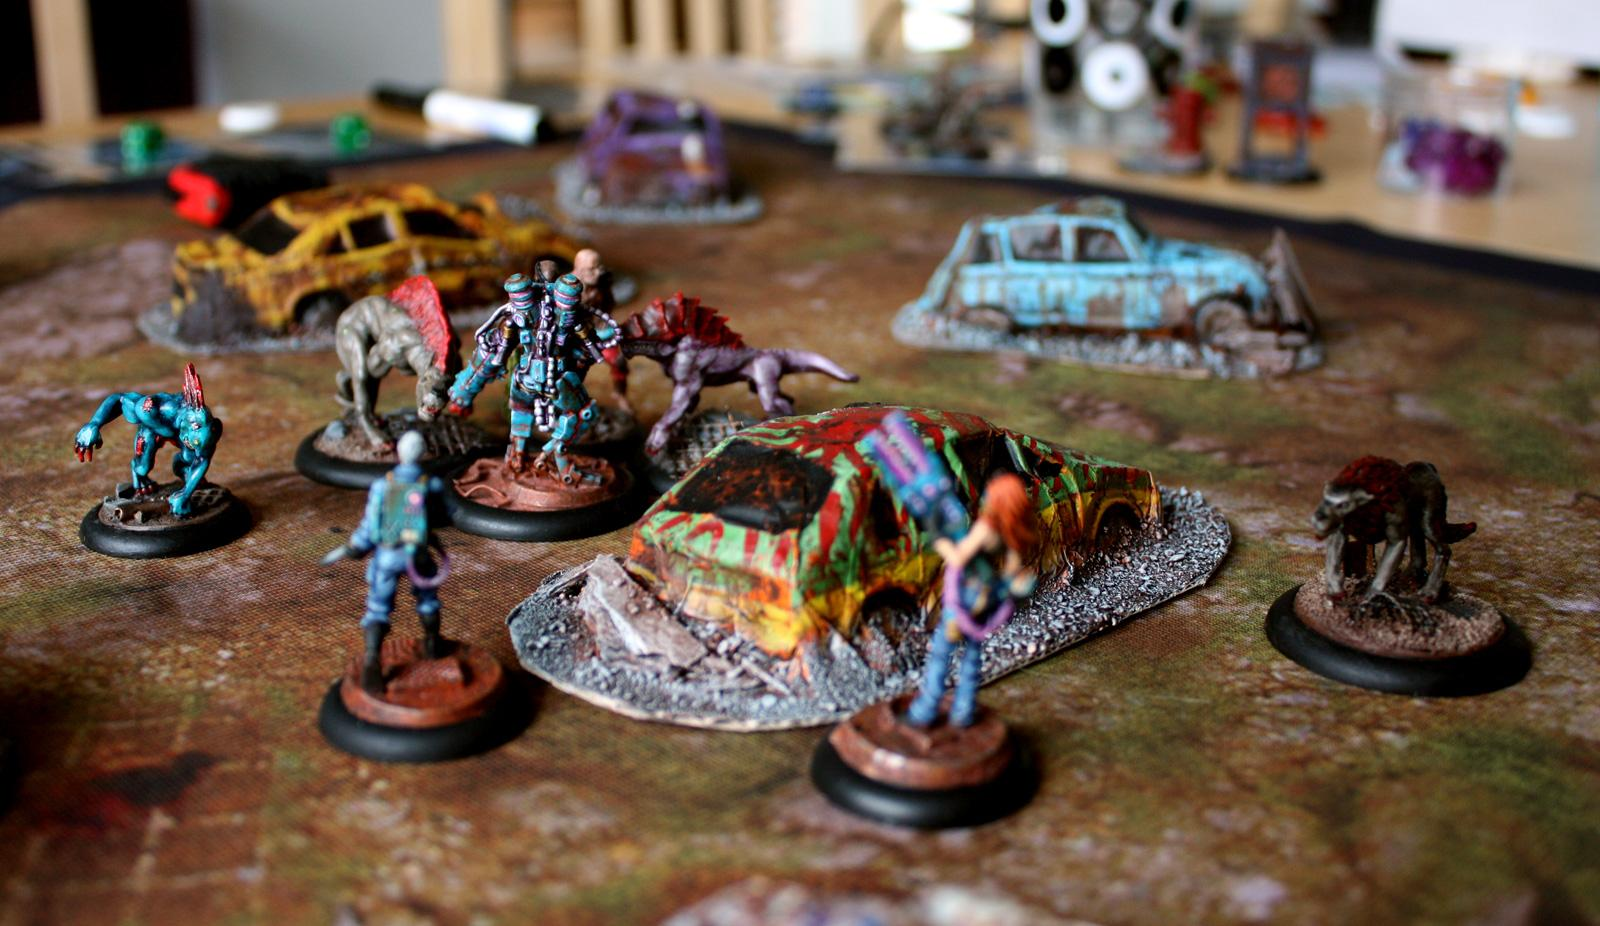 Apocalyptic, Askaris, Battleflags, Cars, Eden, Escape, Horde, Mutant, Pink, Post, Resistance, Skirmish, Turquoise, Wrecks